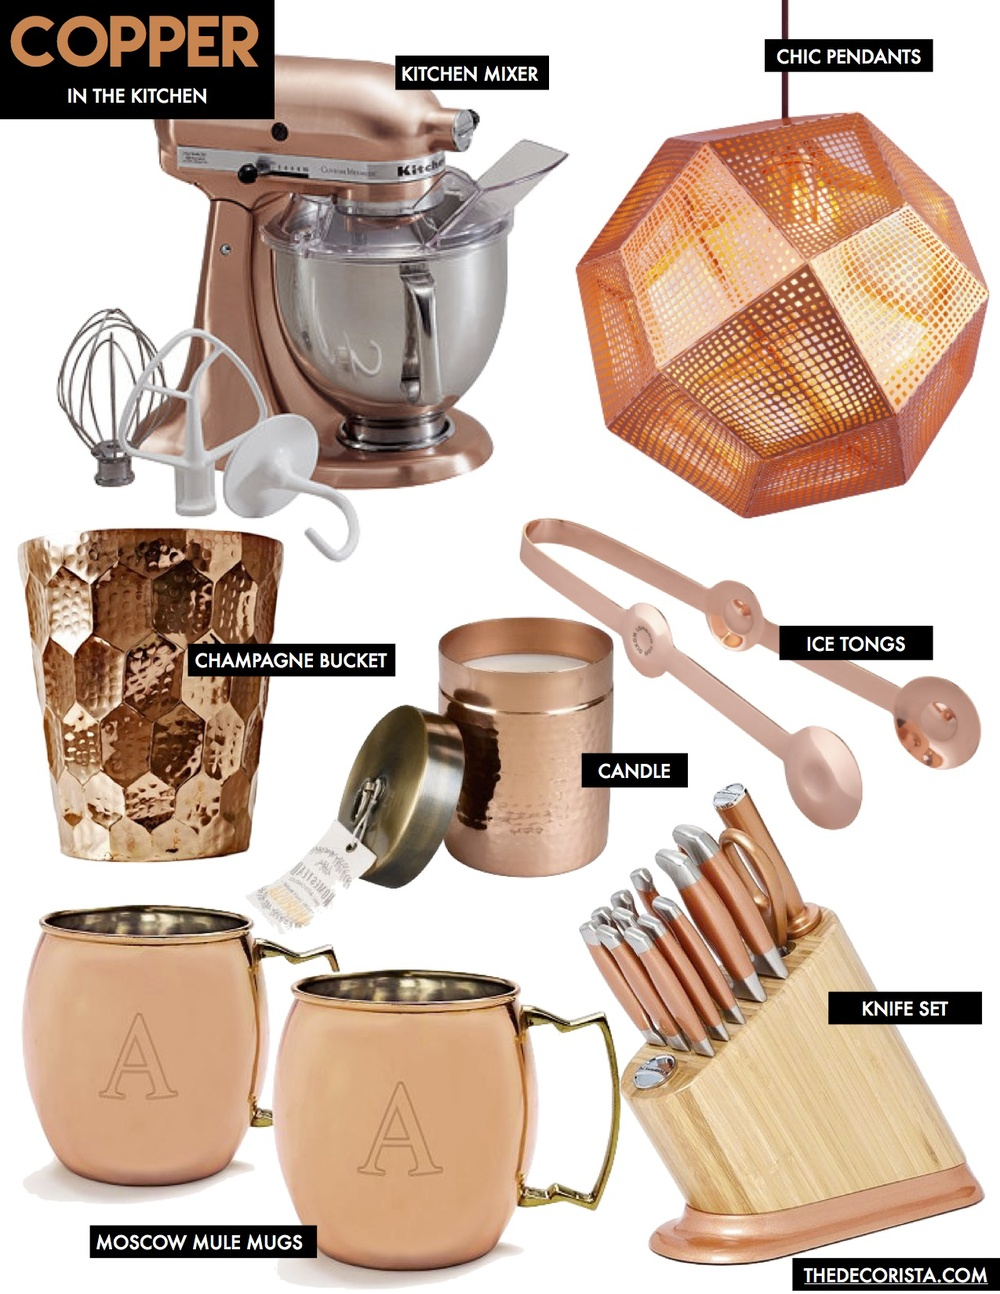 pastel kitchen zq utensilslime coloured peachy utensils pink copper multipurpose next finishing accessories appliances home relieving touches